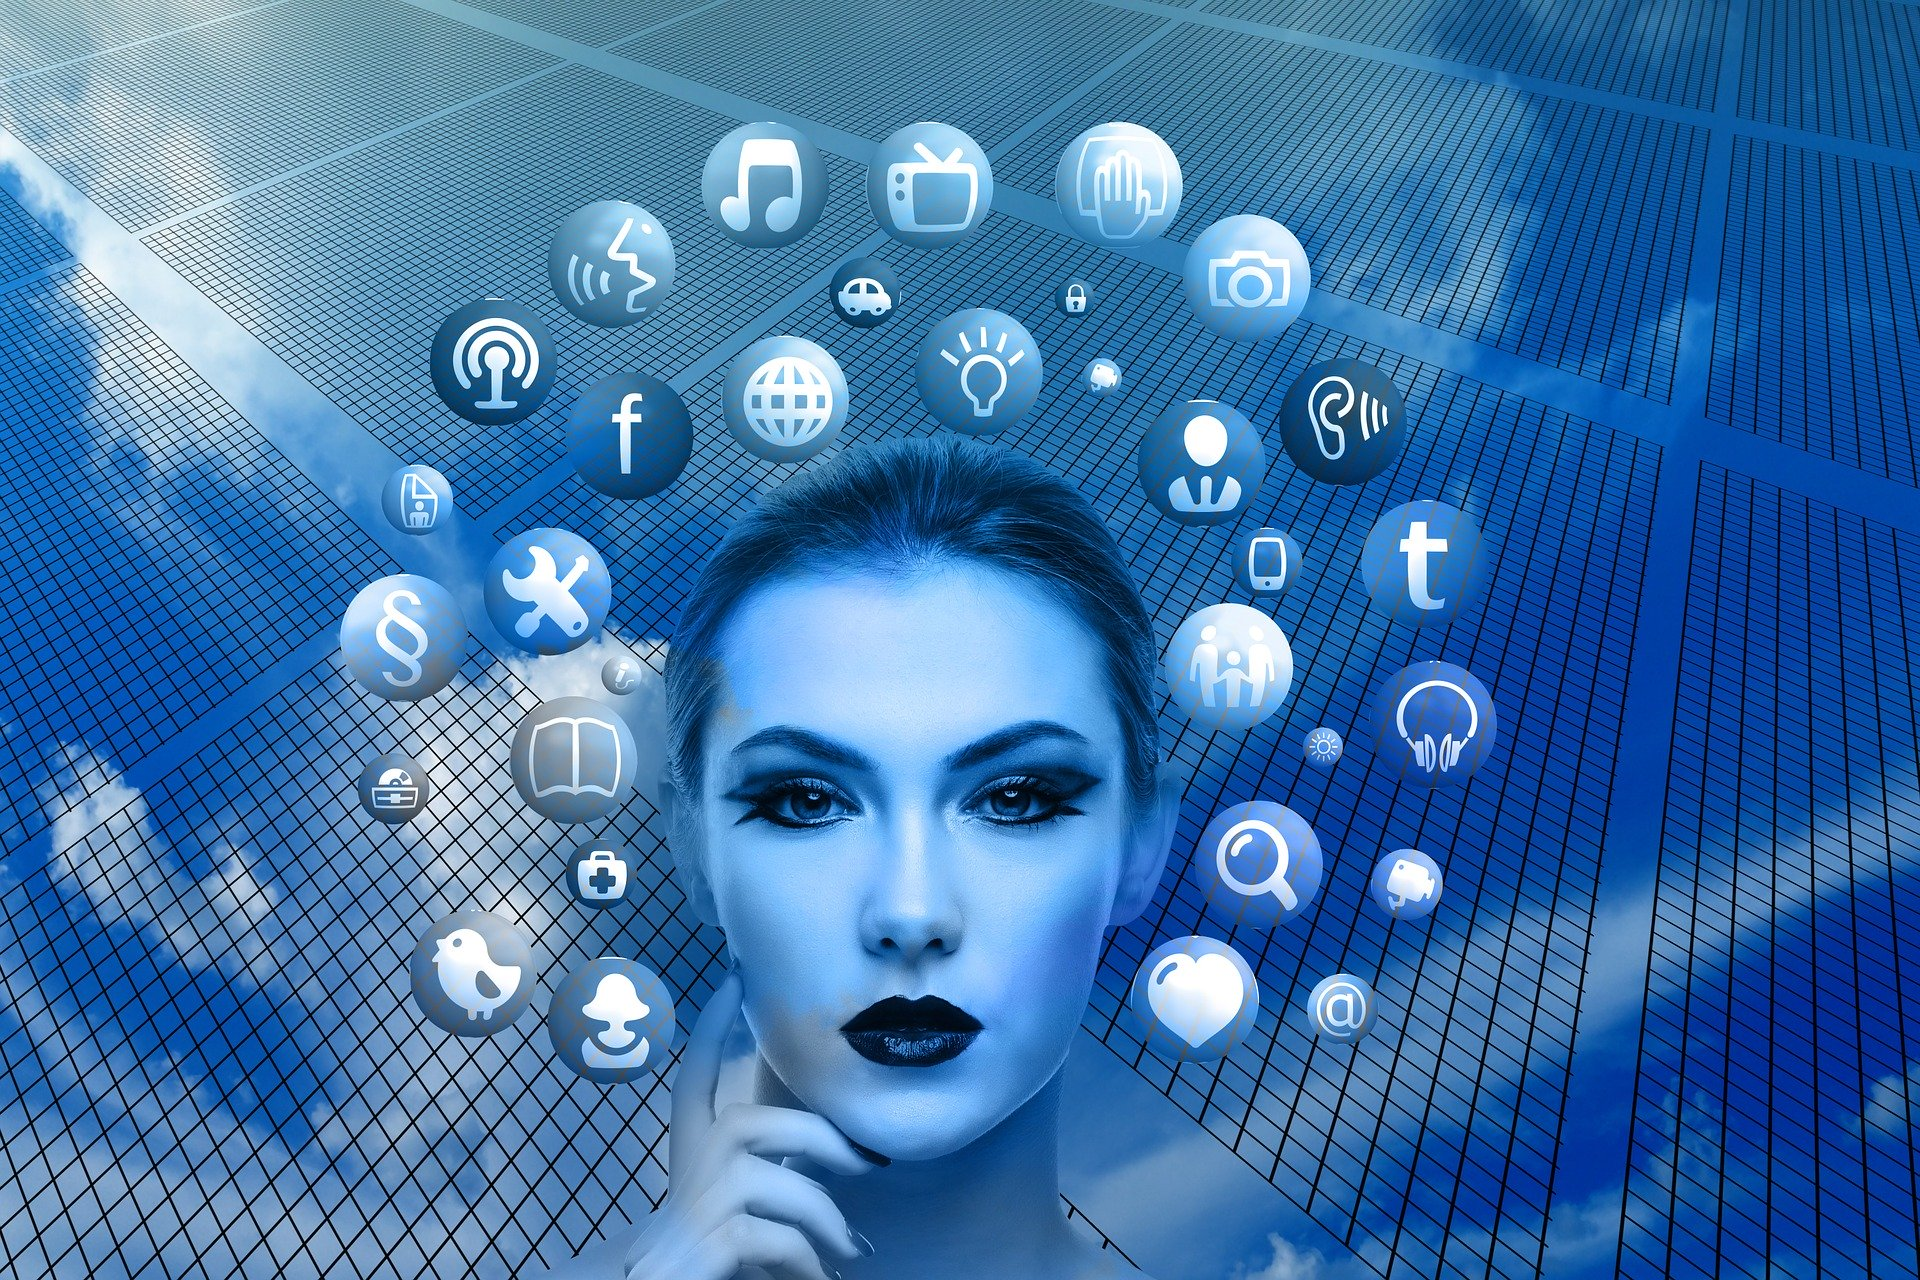 Woman face with social media icons floating around her head